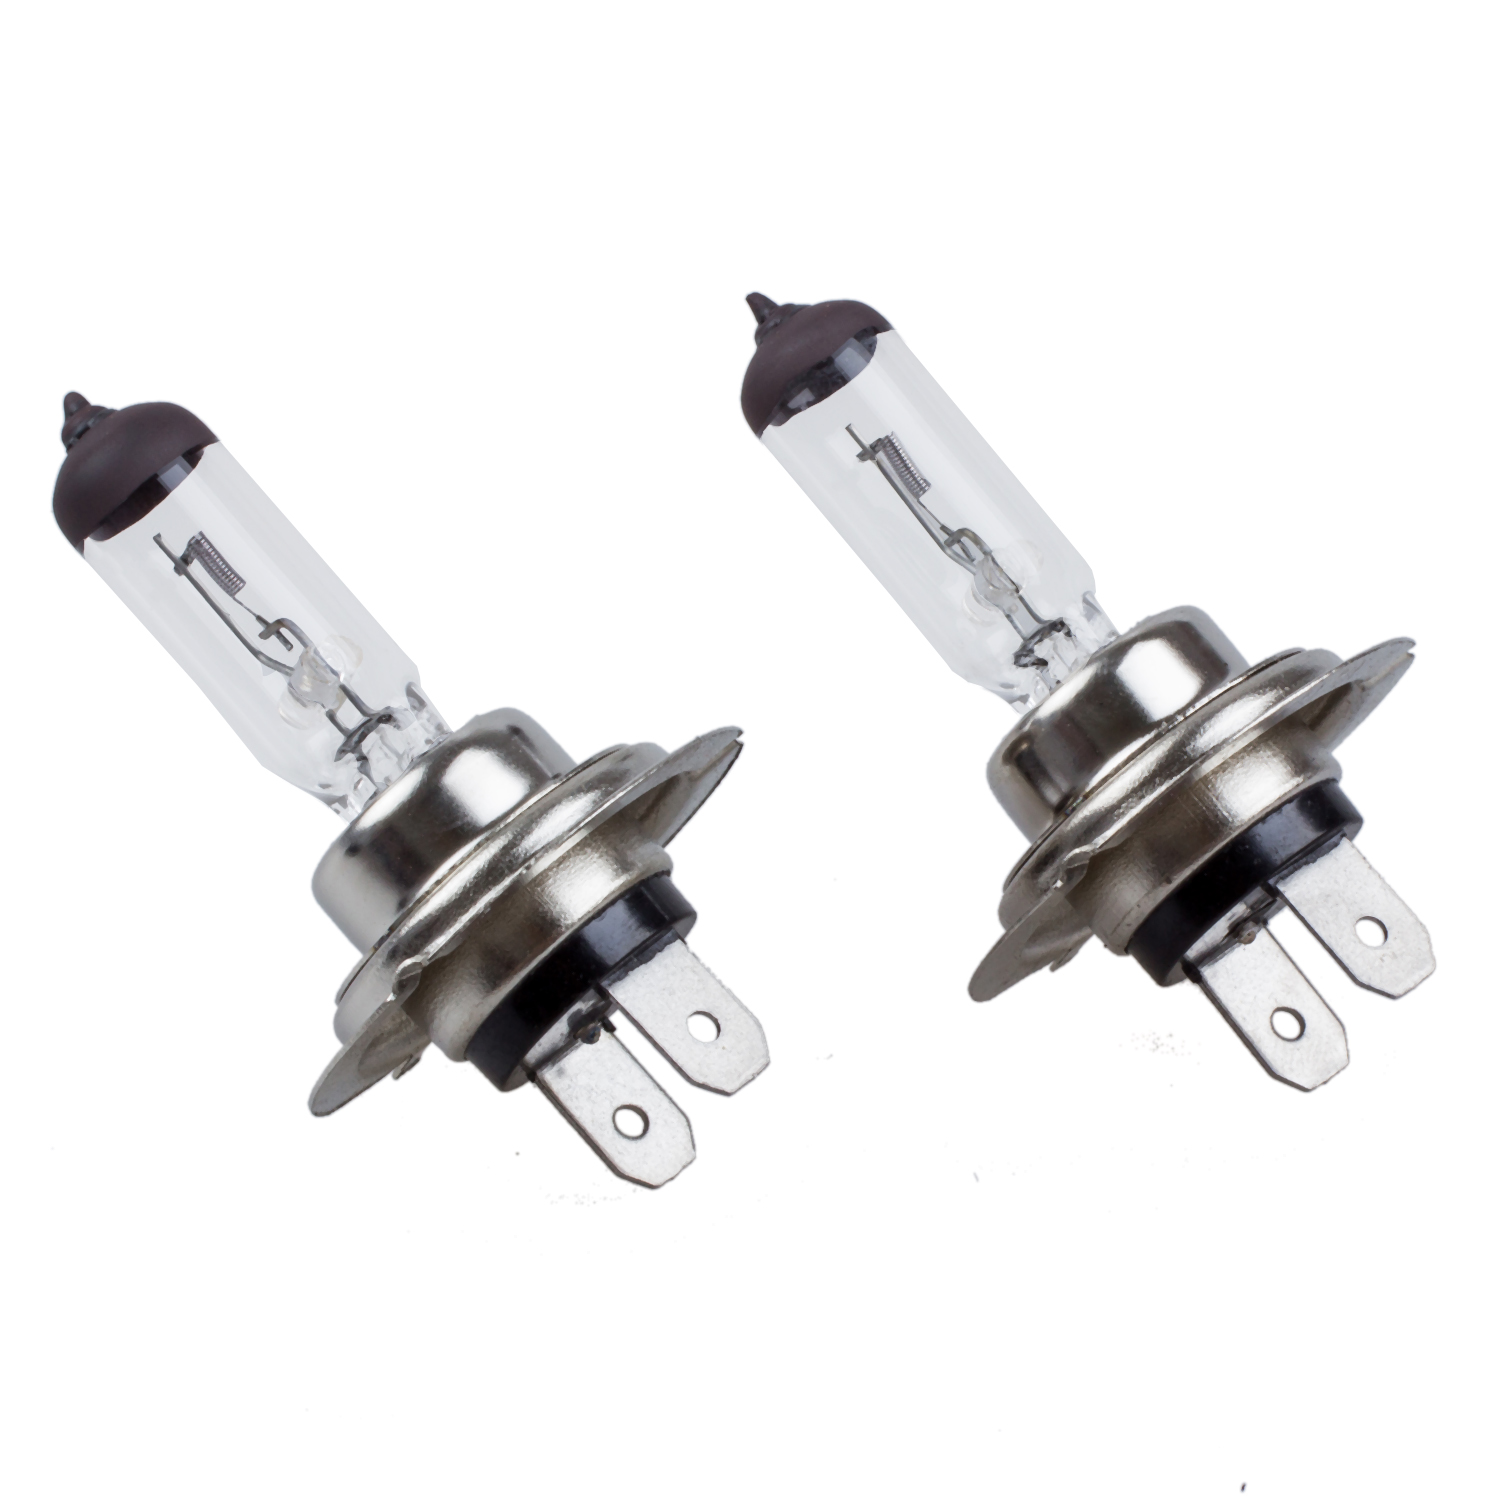 2x Car Front Head Light Headlight H7 Bulb Light Lamp 12V 55W